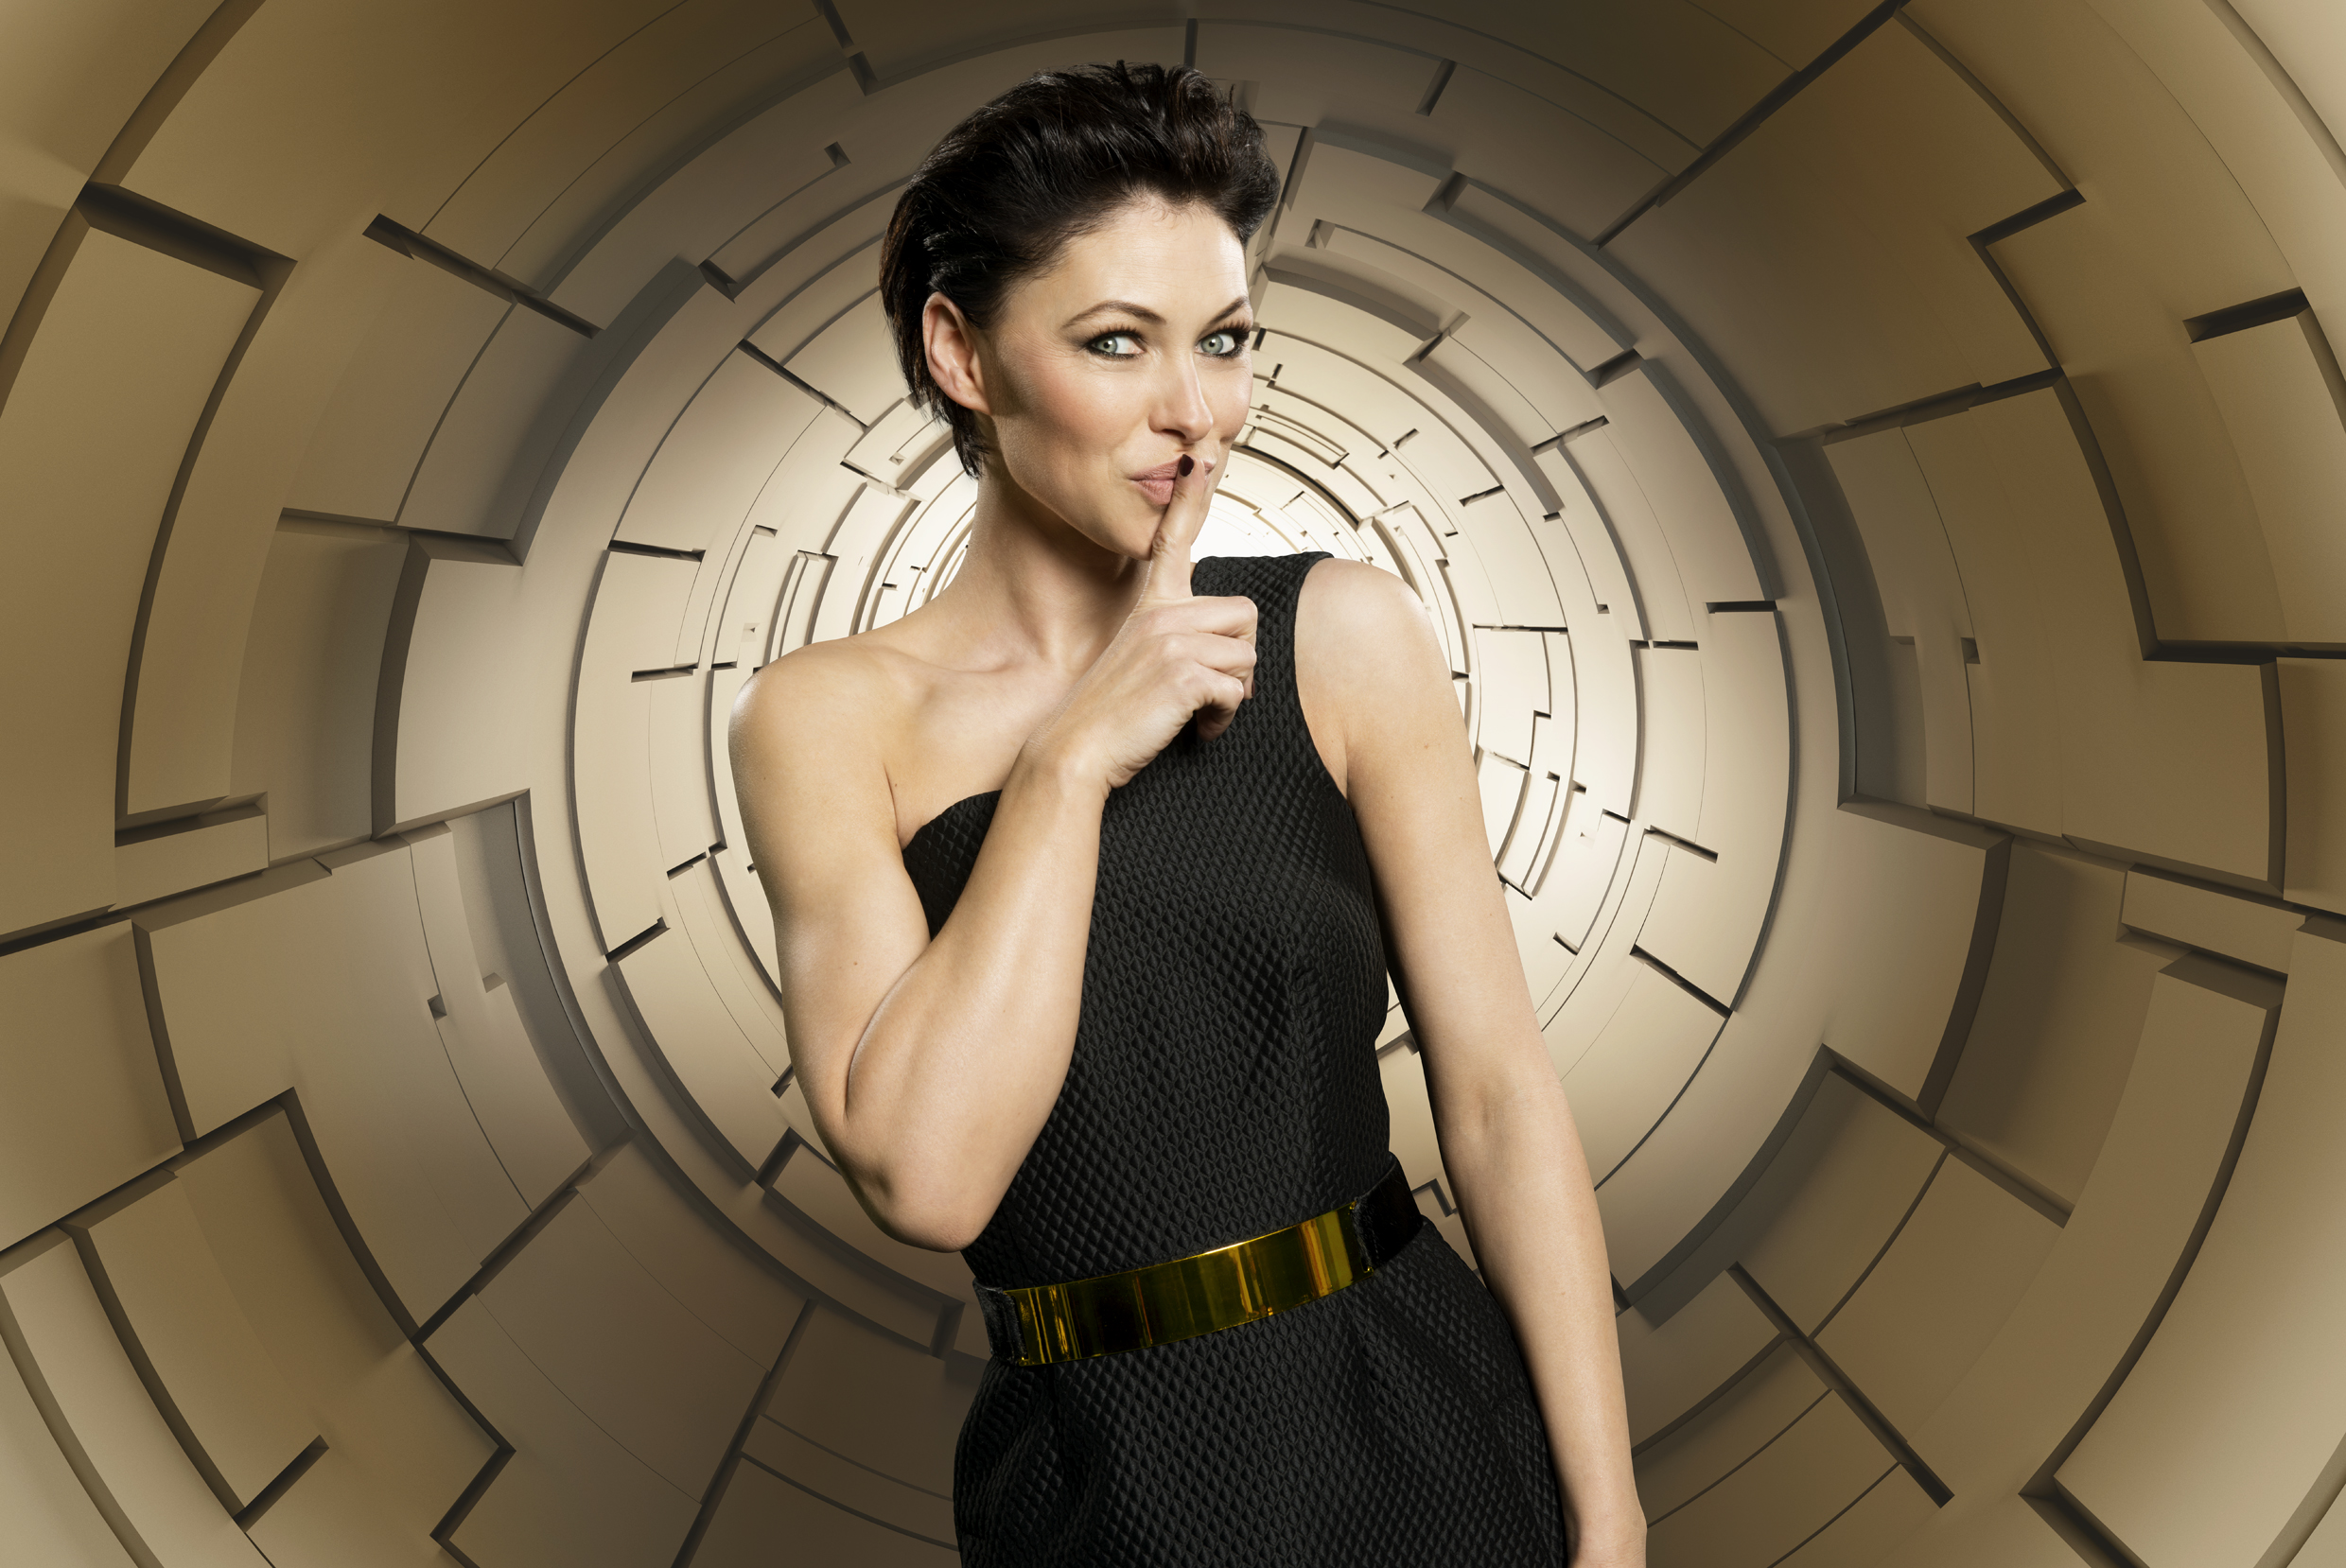 Day -7: C5 release new Emma and Rylan presenter shots